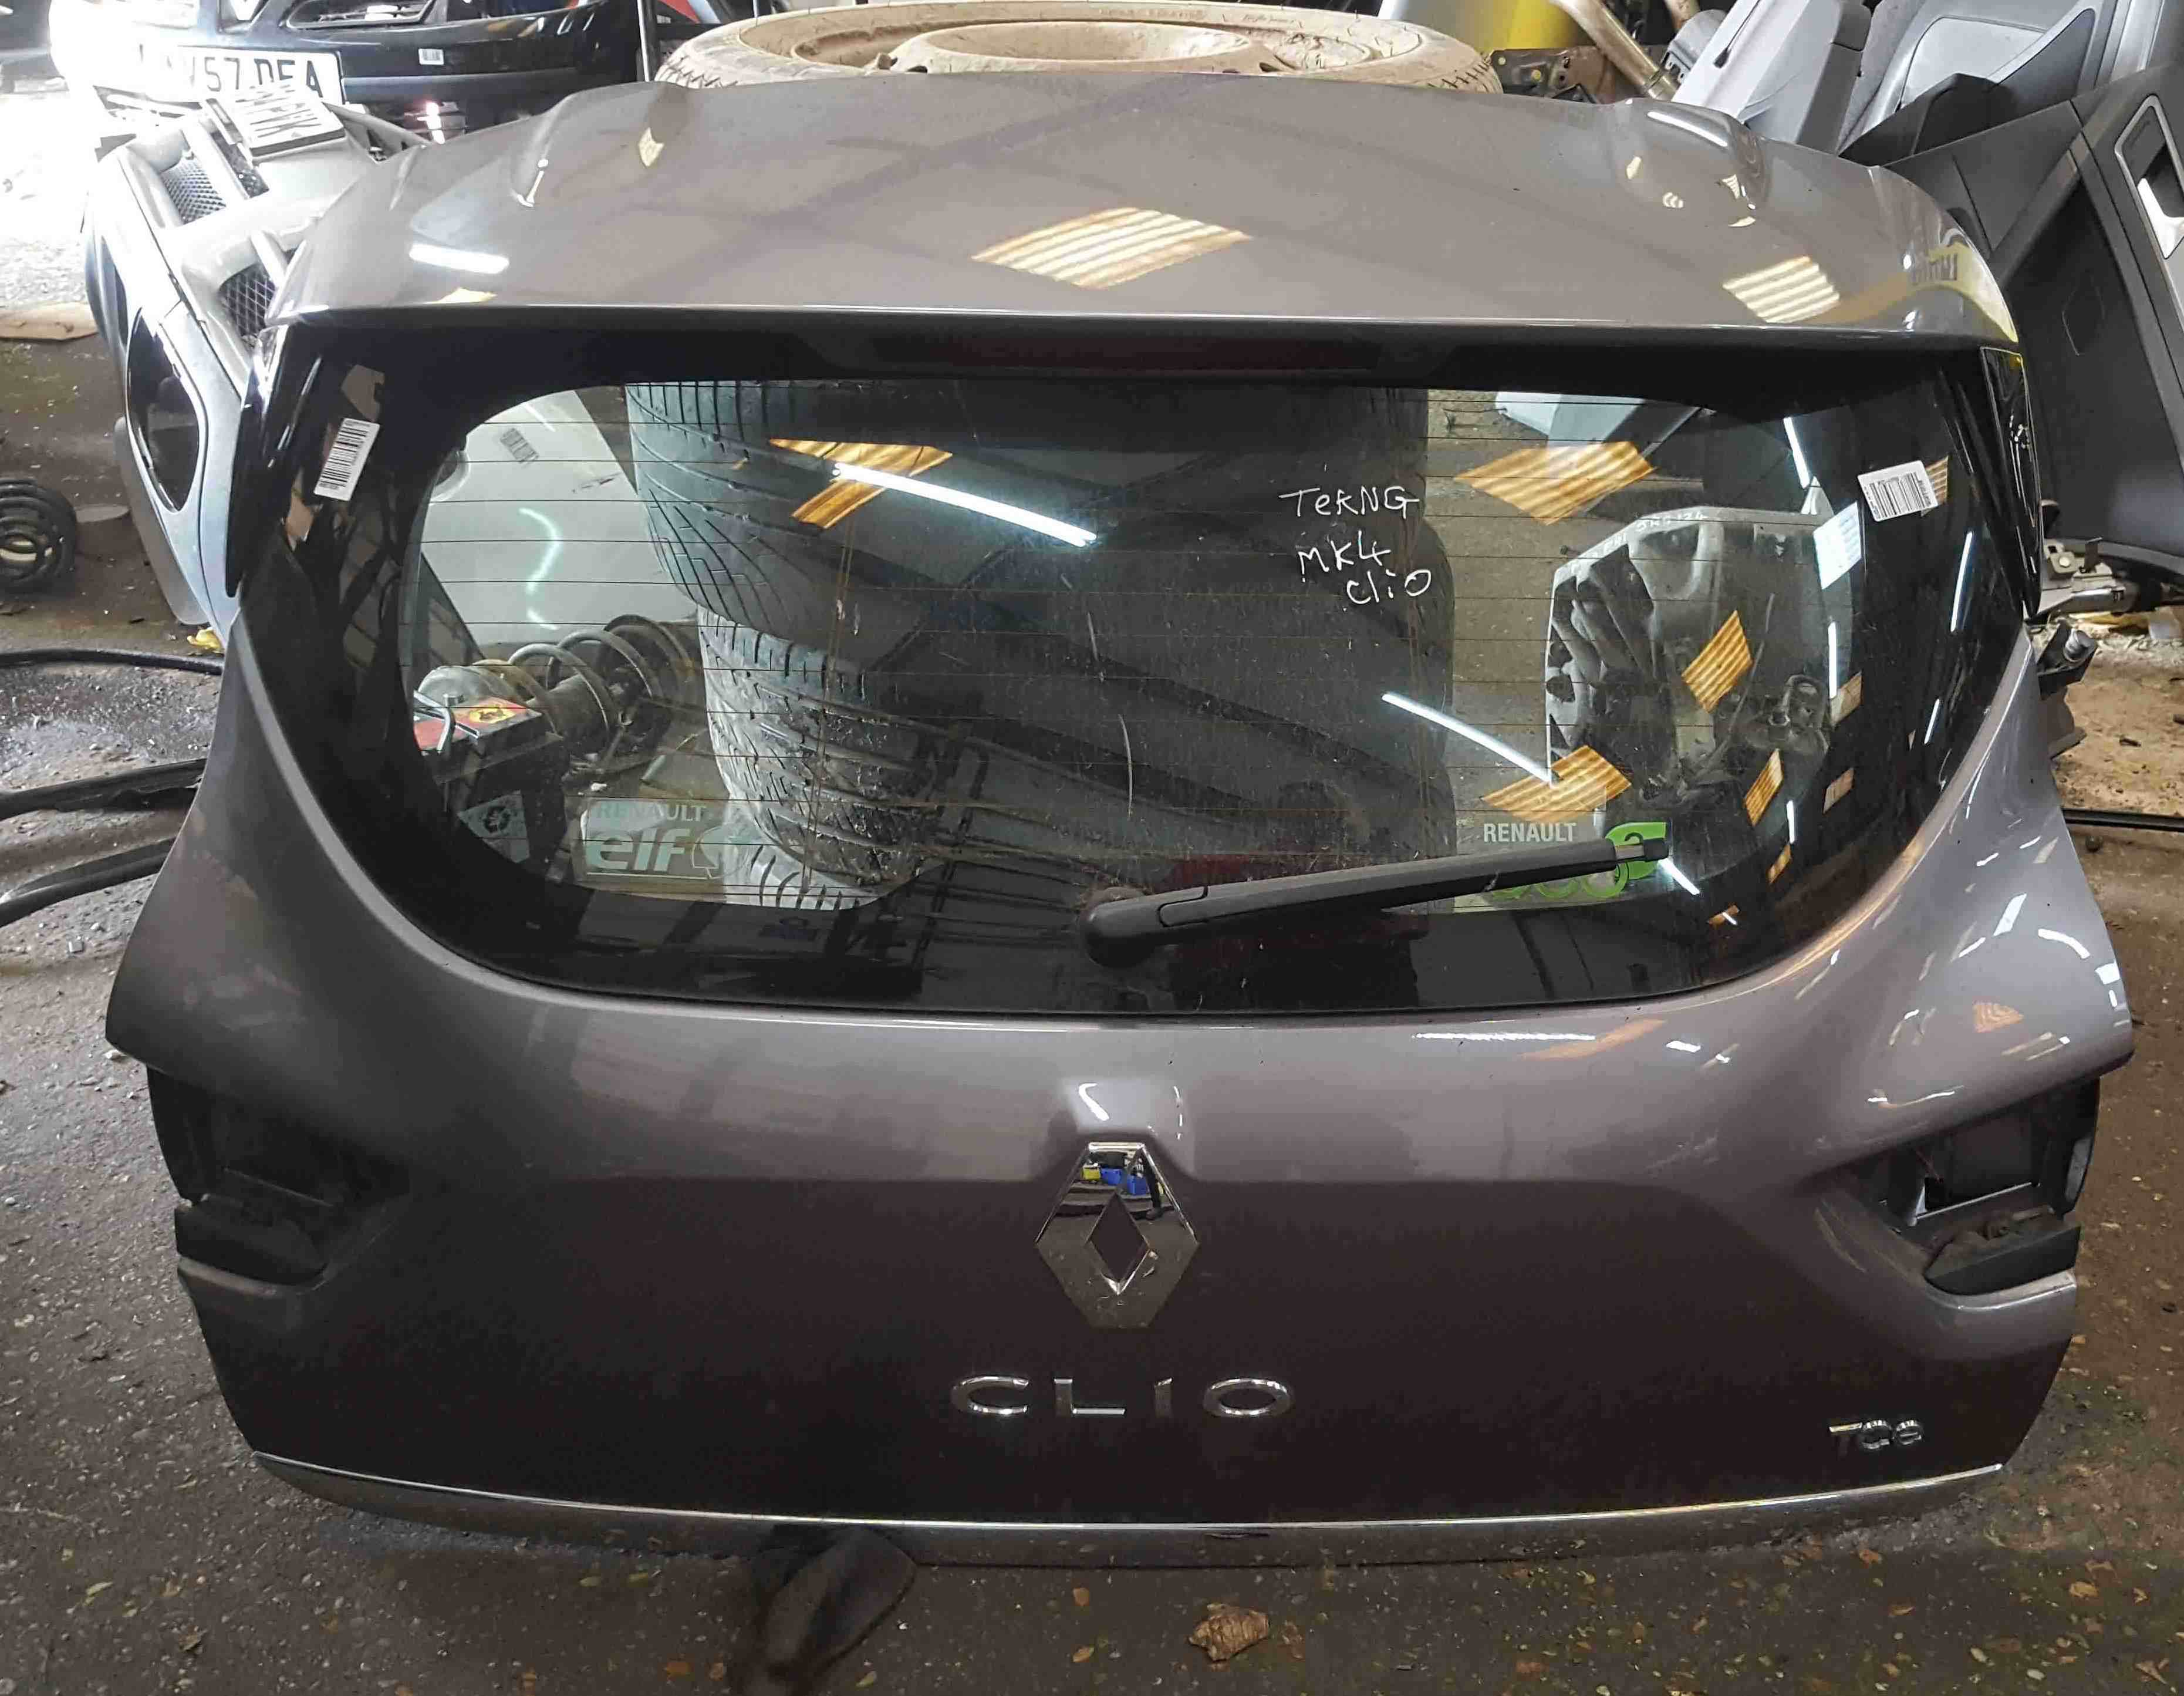 Renault Clio MK4 2013-2018 Rear Tailgate Boot Grey TEKNG